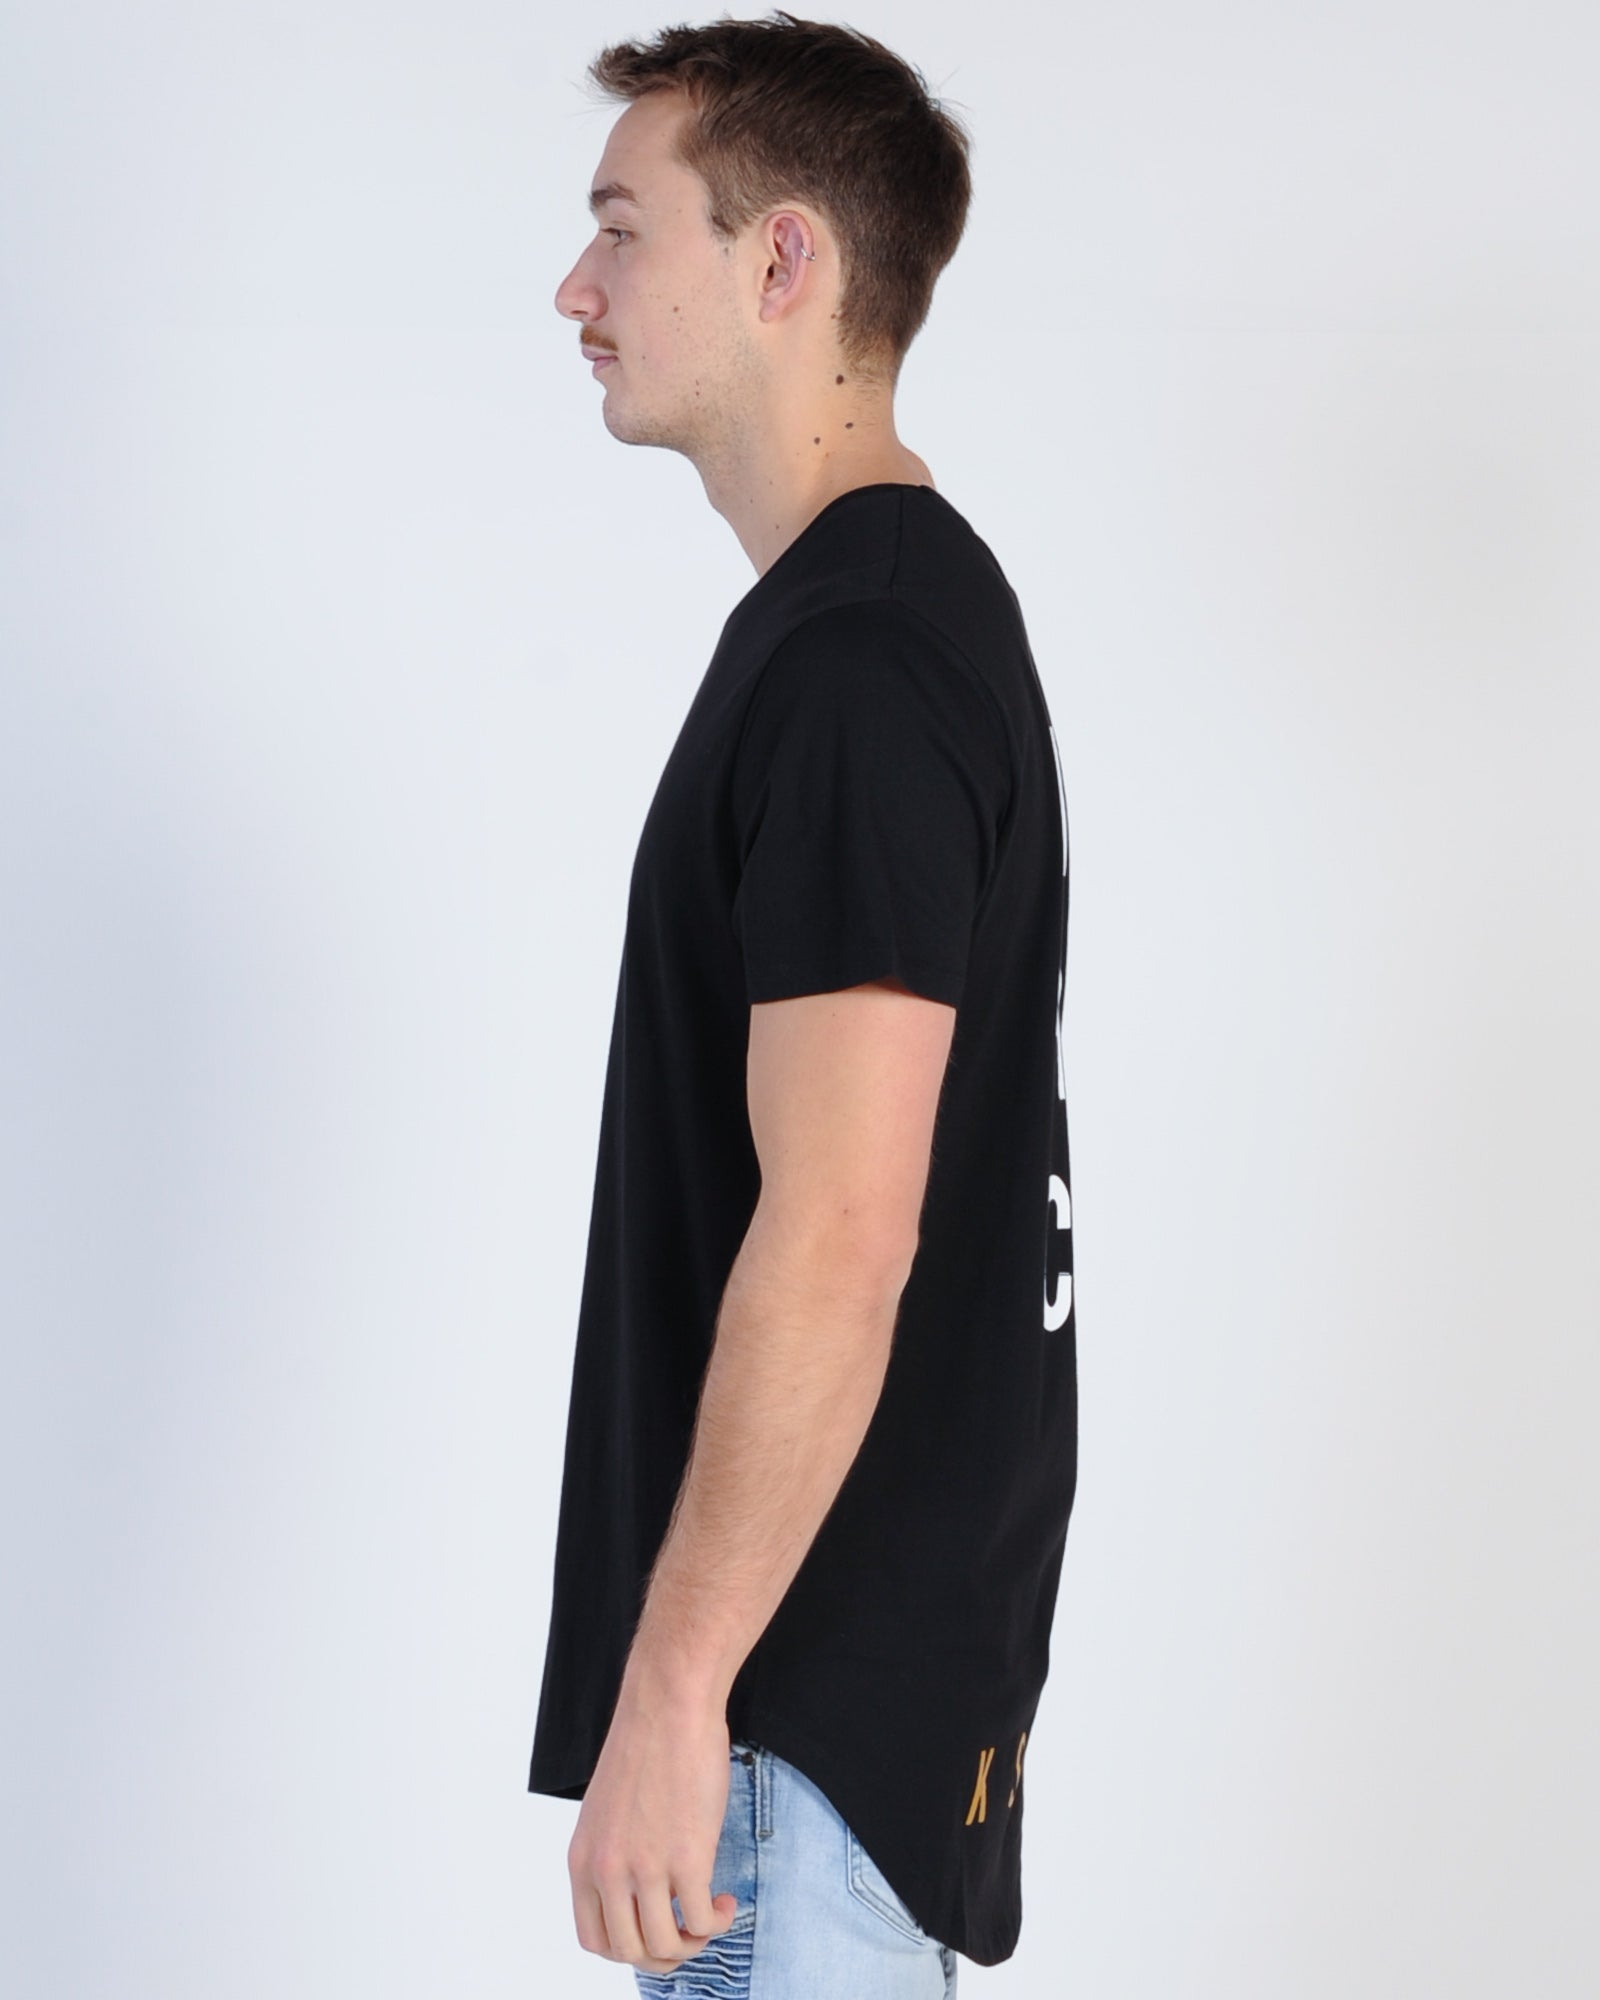 Kiss Chacey Chasing Scoop Tee - Jet Black